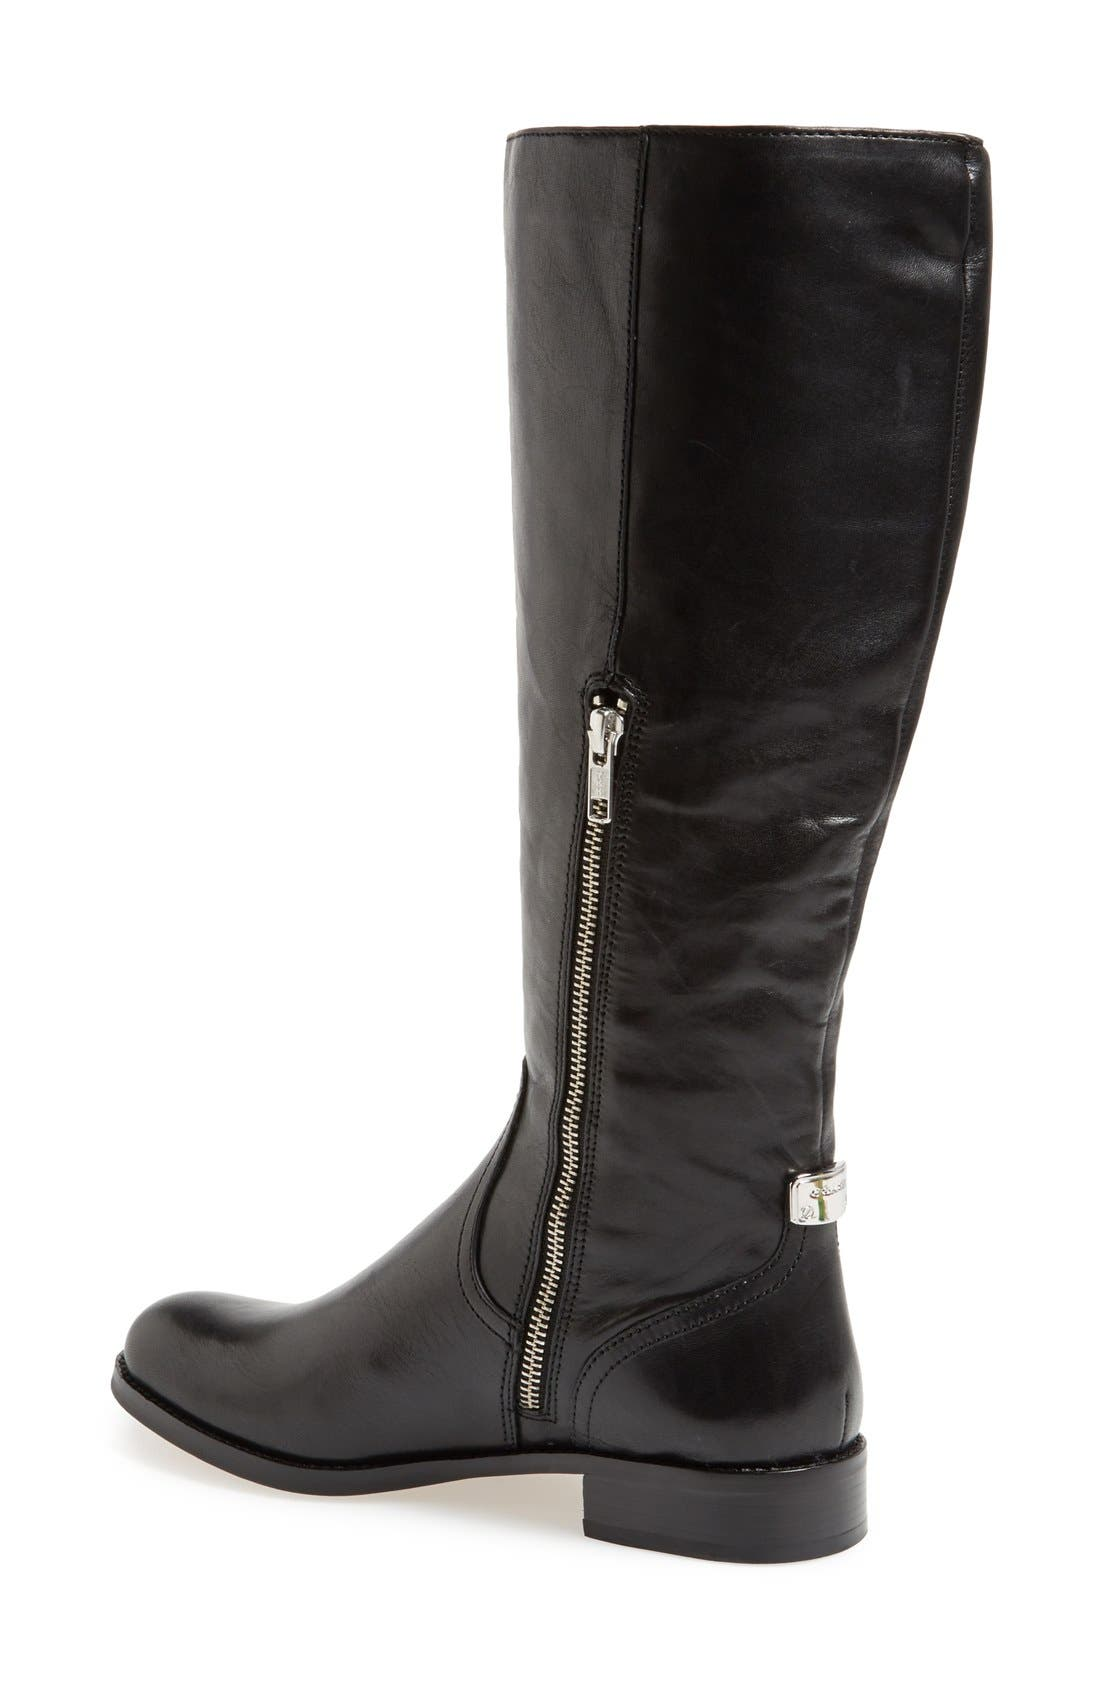 Alternate Image 3  - COACH 'Mirriam' Leather Riding Boot (Women)